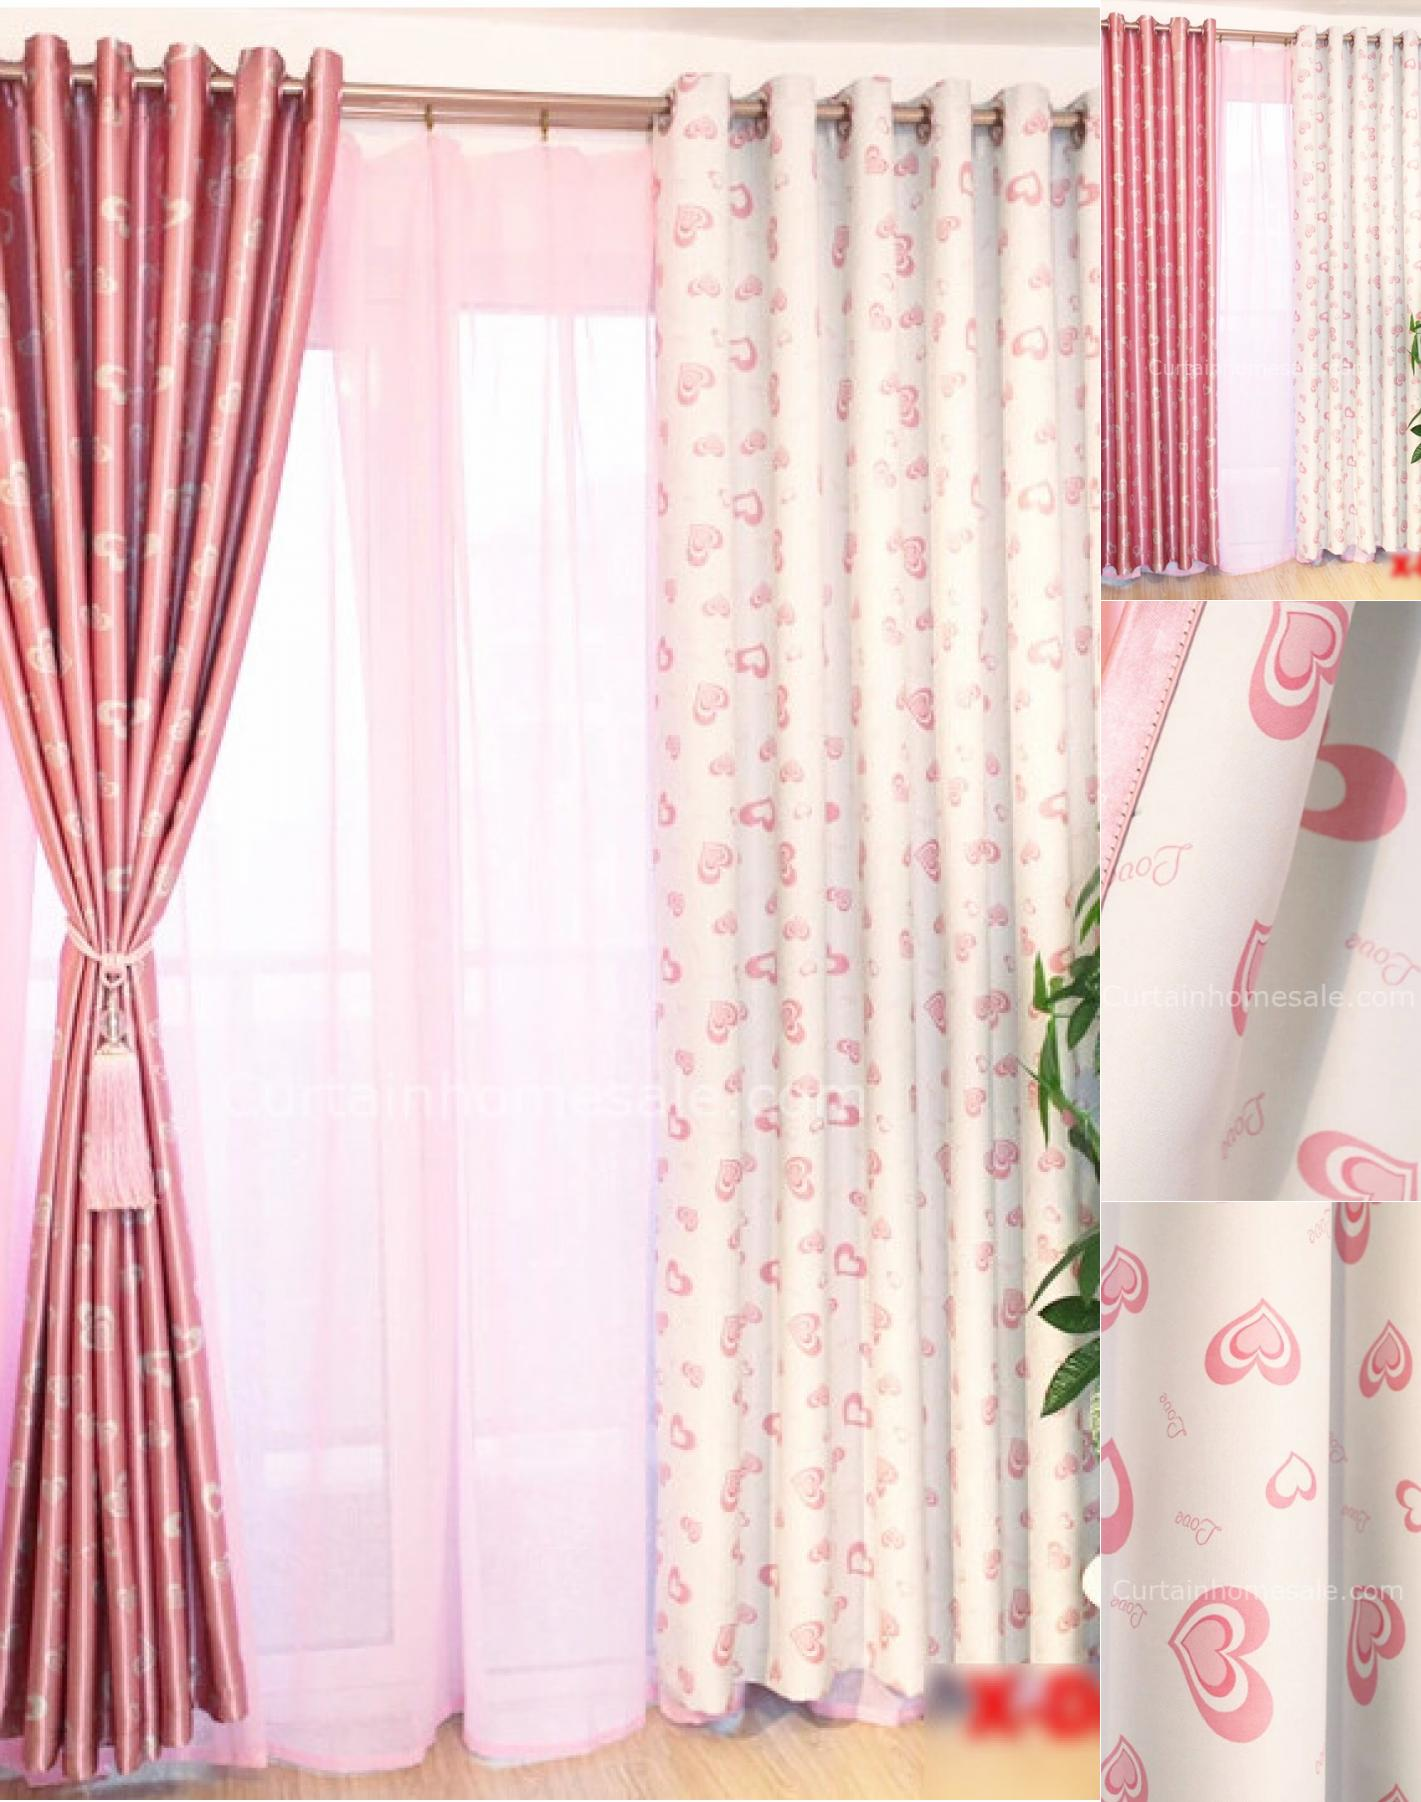 Picture of: Sweet Blackout Curtains Nursery Image